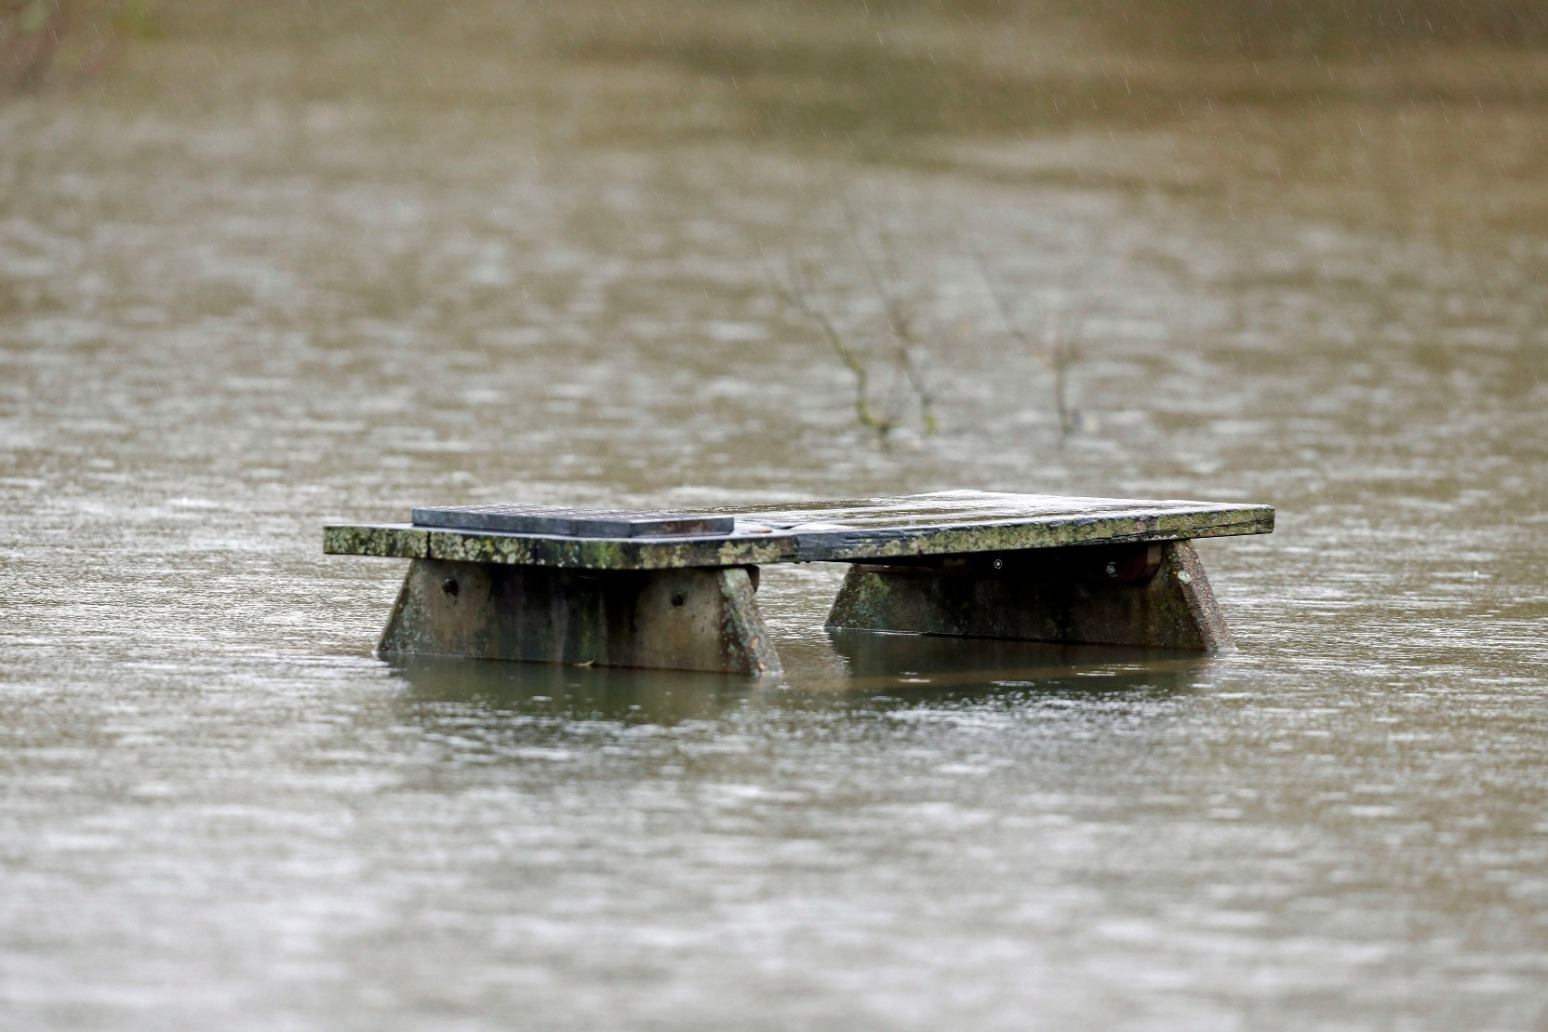 FLOOD WARNINGS STILL IN EFFECT ACROSS ENGLAND, BUT RELIEF FROM RAIN FORECAST